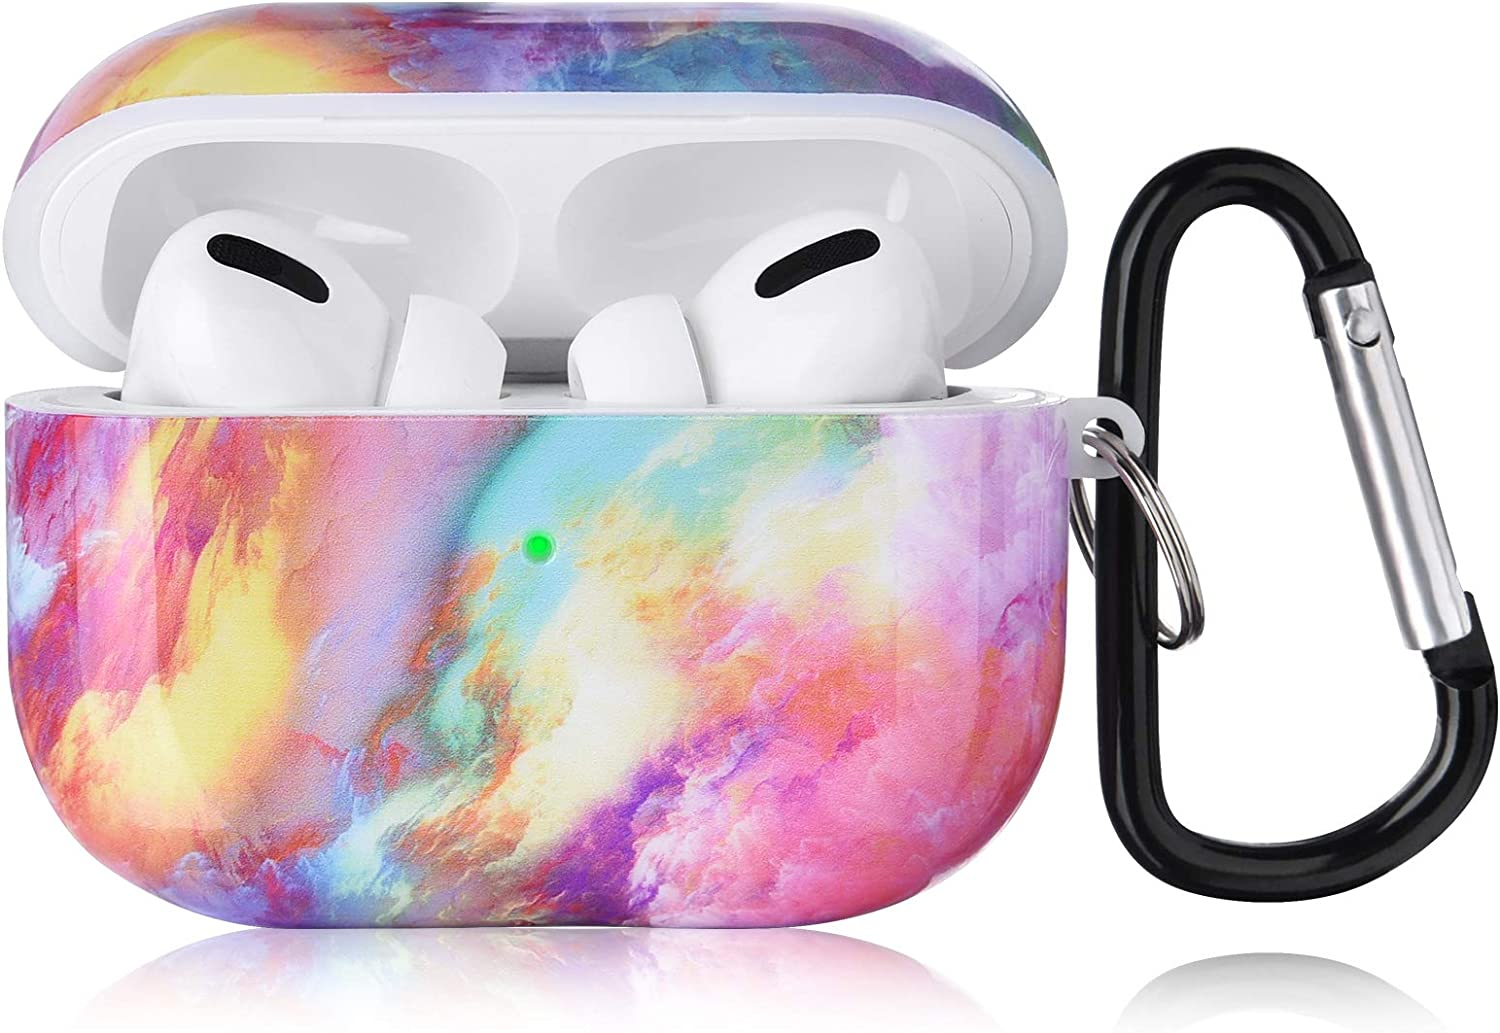 KOREDA Compatible with Airpods Pro Case, Cute Accessories Marble Protective Hard Case Cover Portable & Shockproof Women Girls Men with Keychain/Strap for Apple Airpods Pro Charging Case (Colorful)